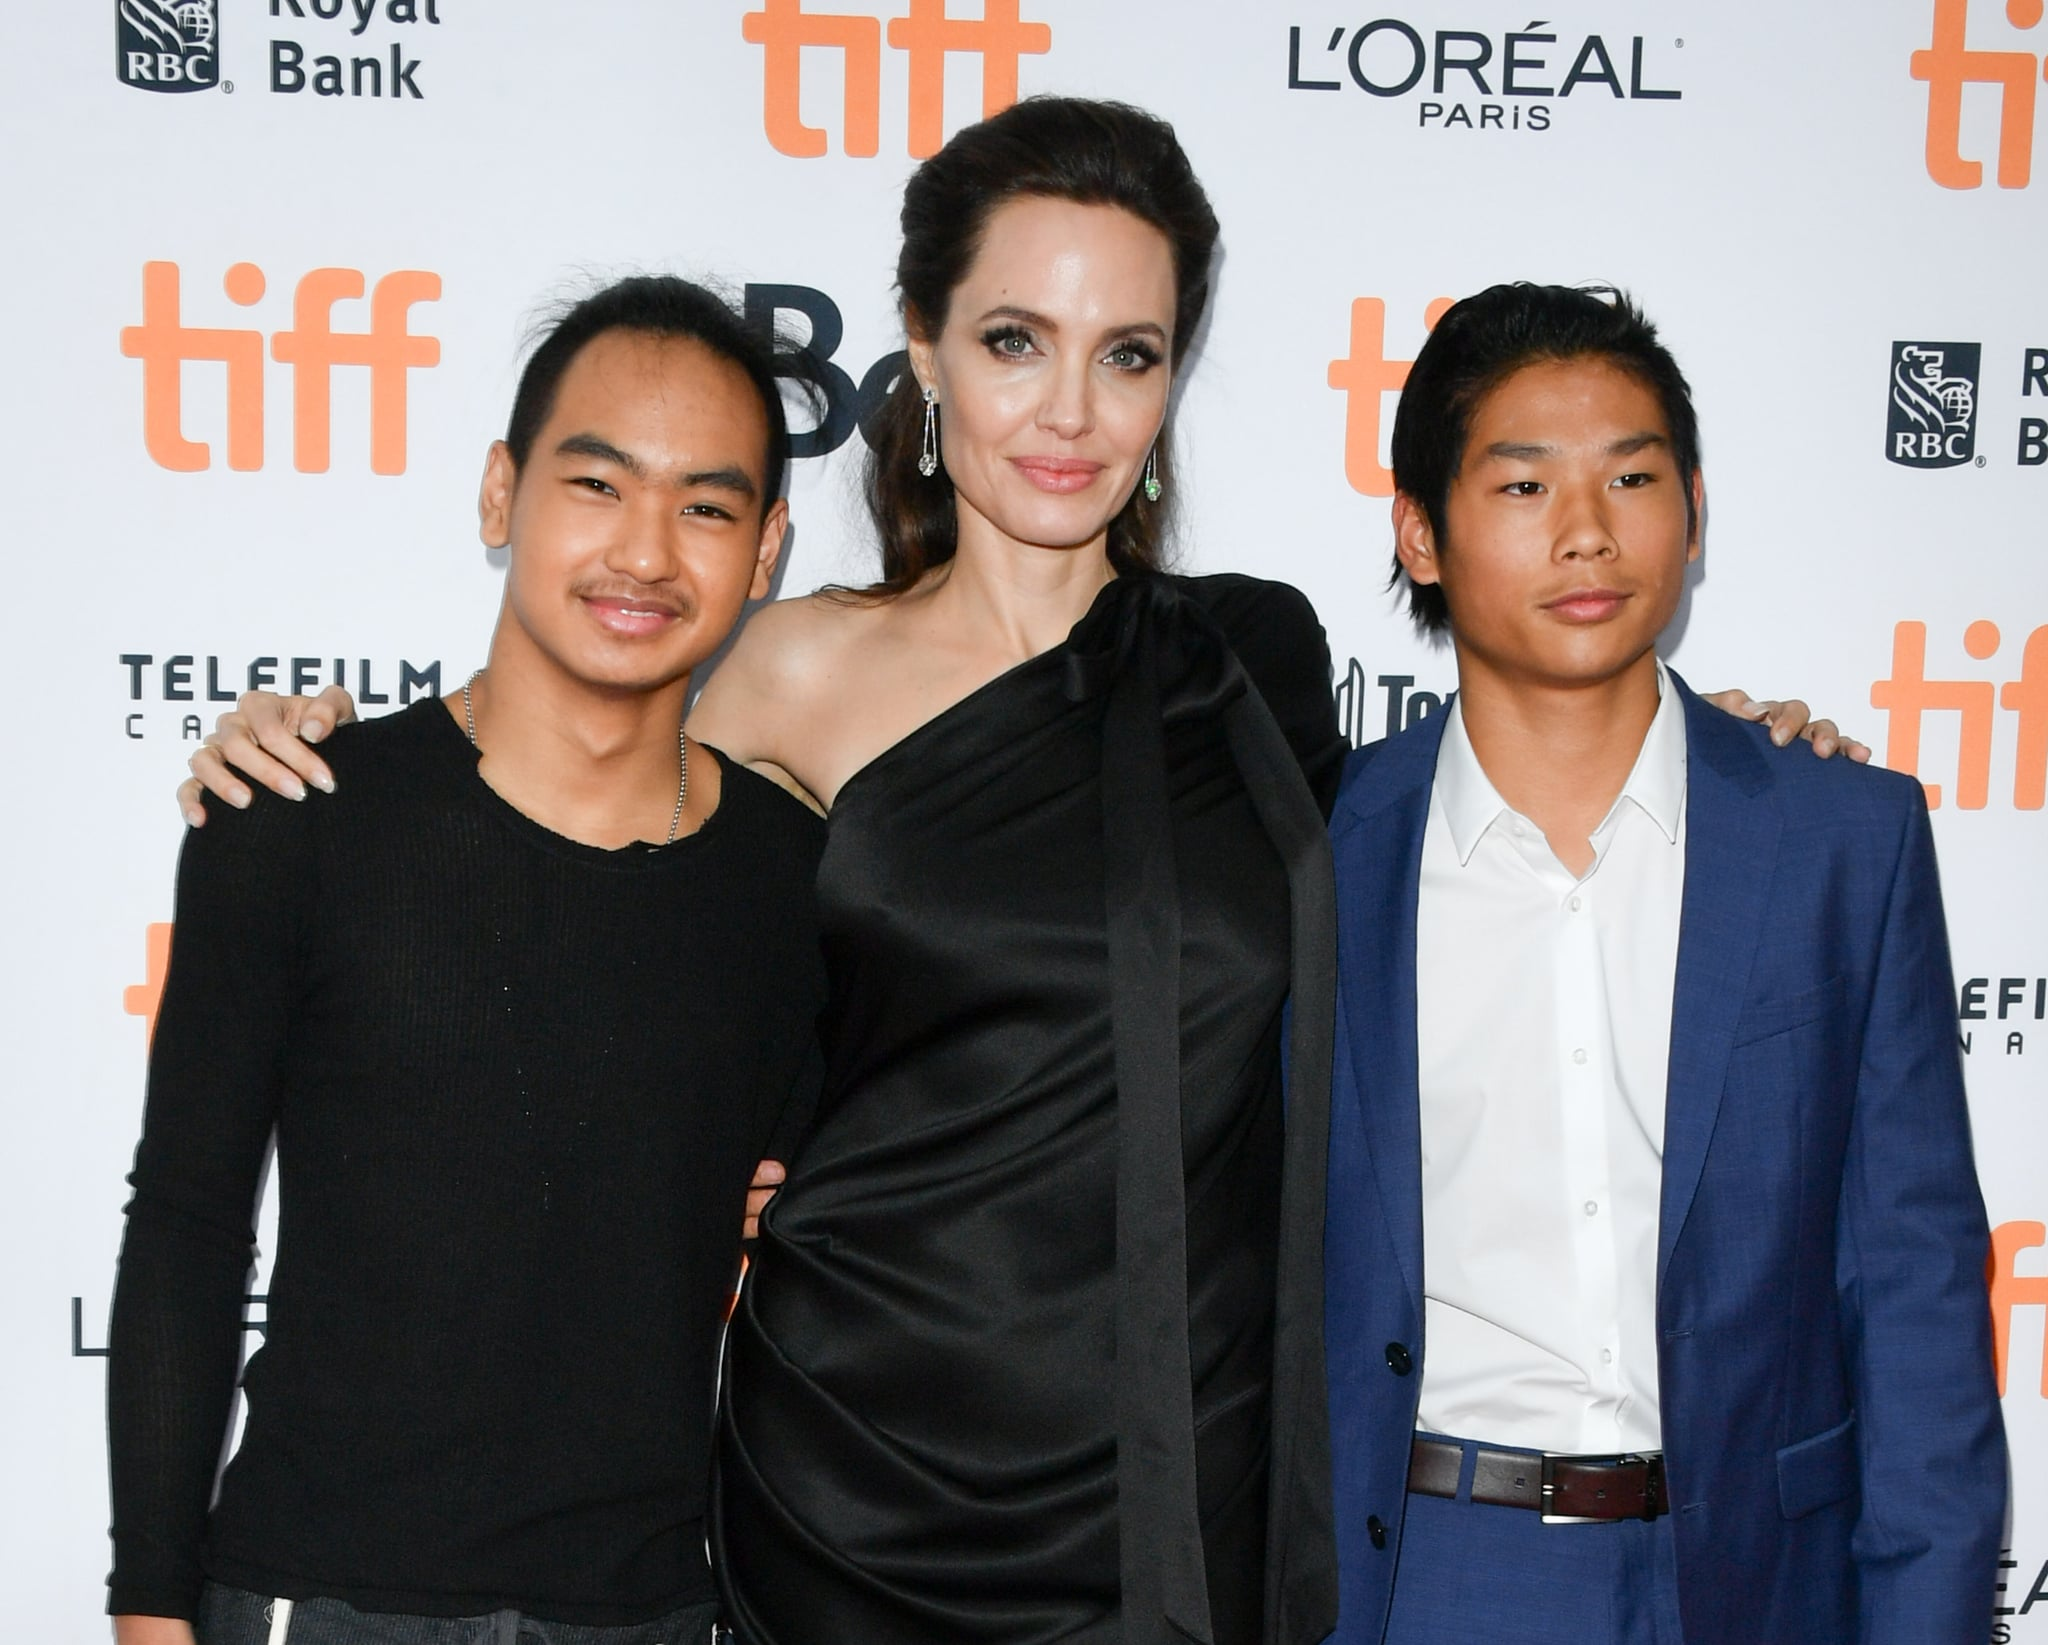 How Old Are Brad Pitt and Angelina Jolie's Kids? | POPSUGAR